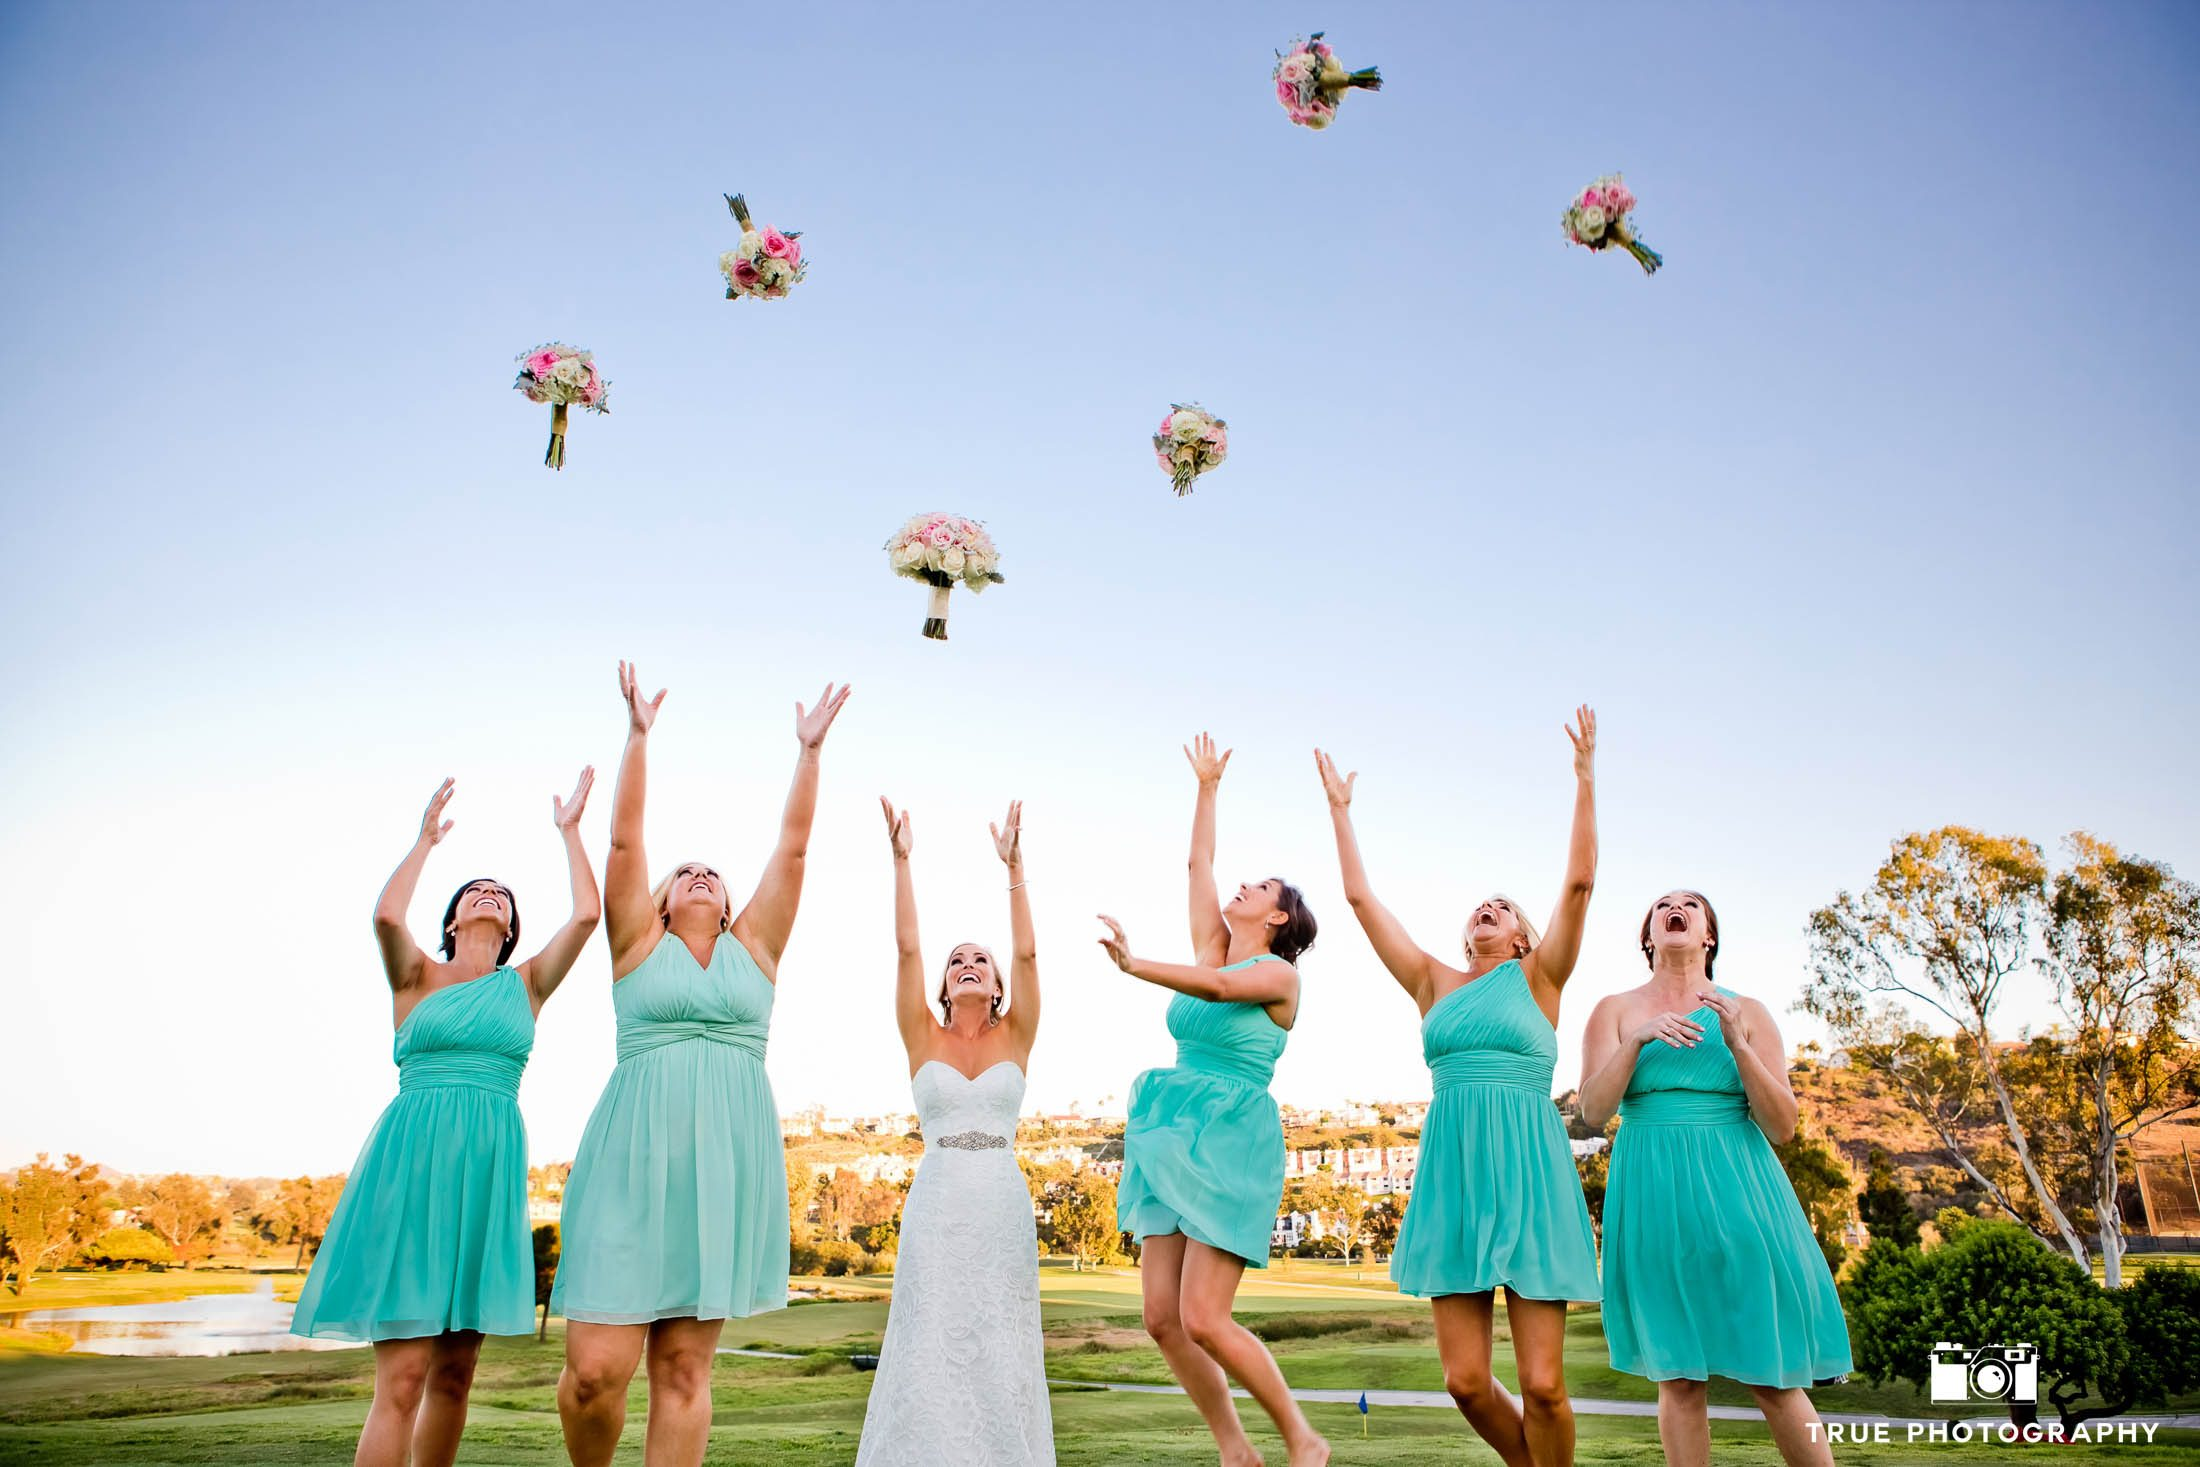 Bridesmaids and Bride toss wedding bouquets up in air